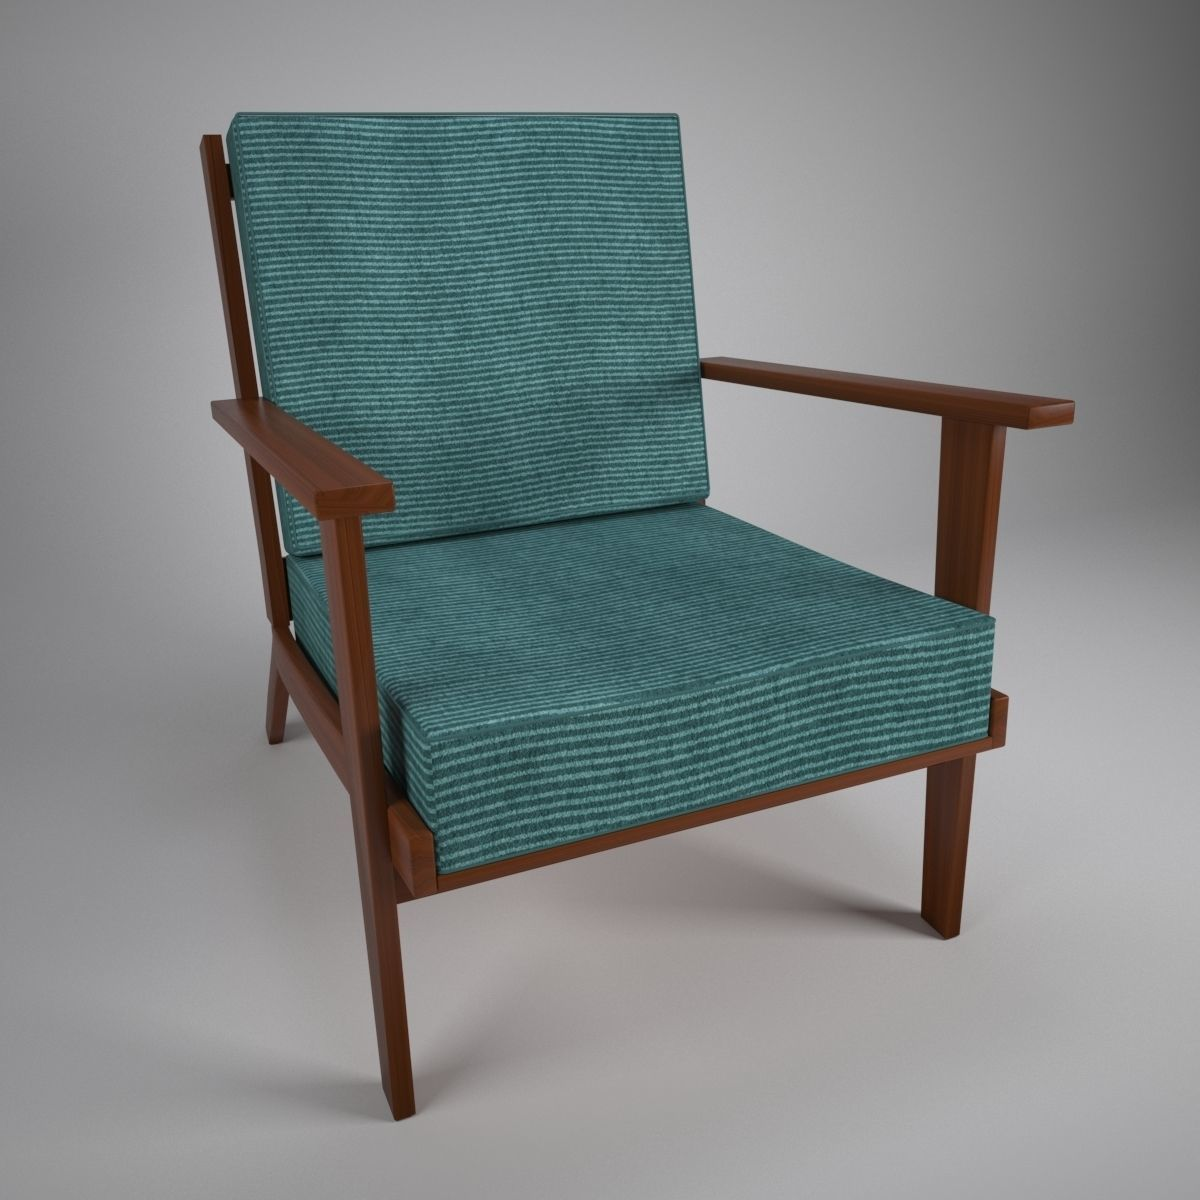 Wooden Armchair With Cushions 3d Model